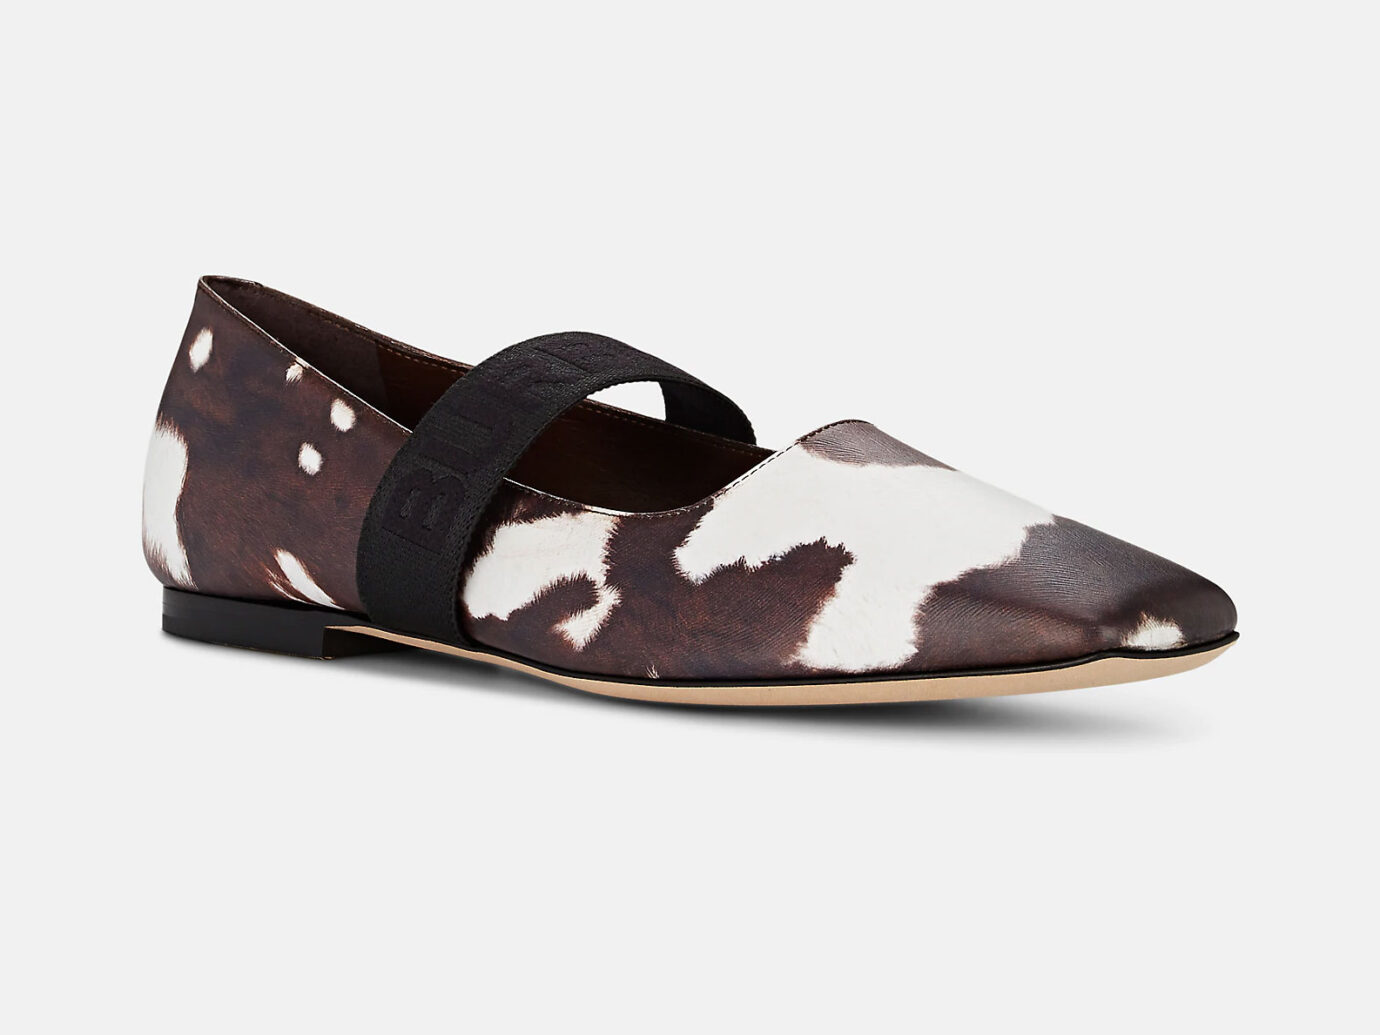 Burberry Cow-Print Leather Ballet Flats